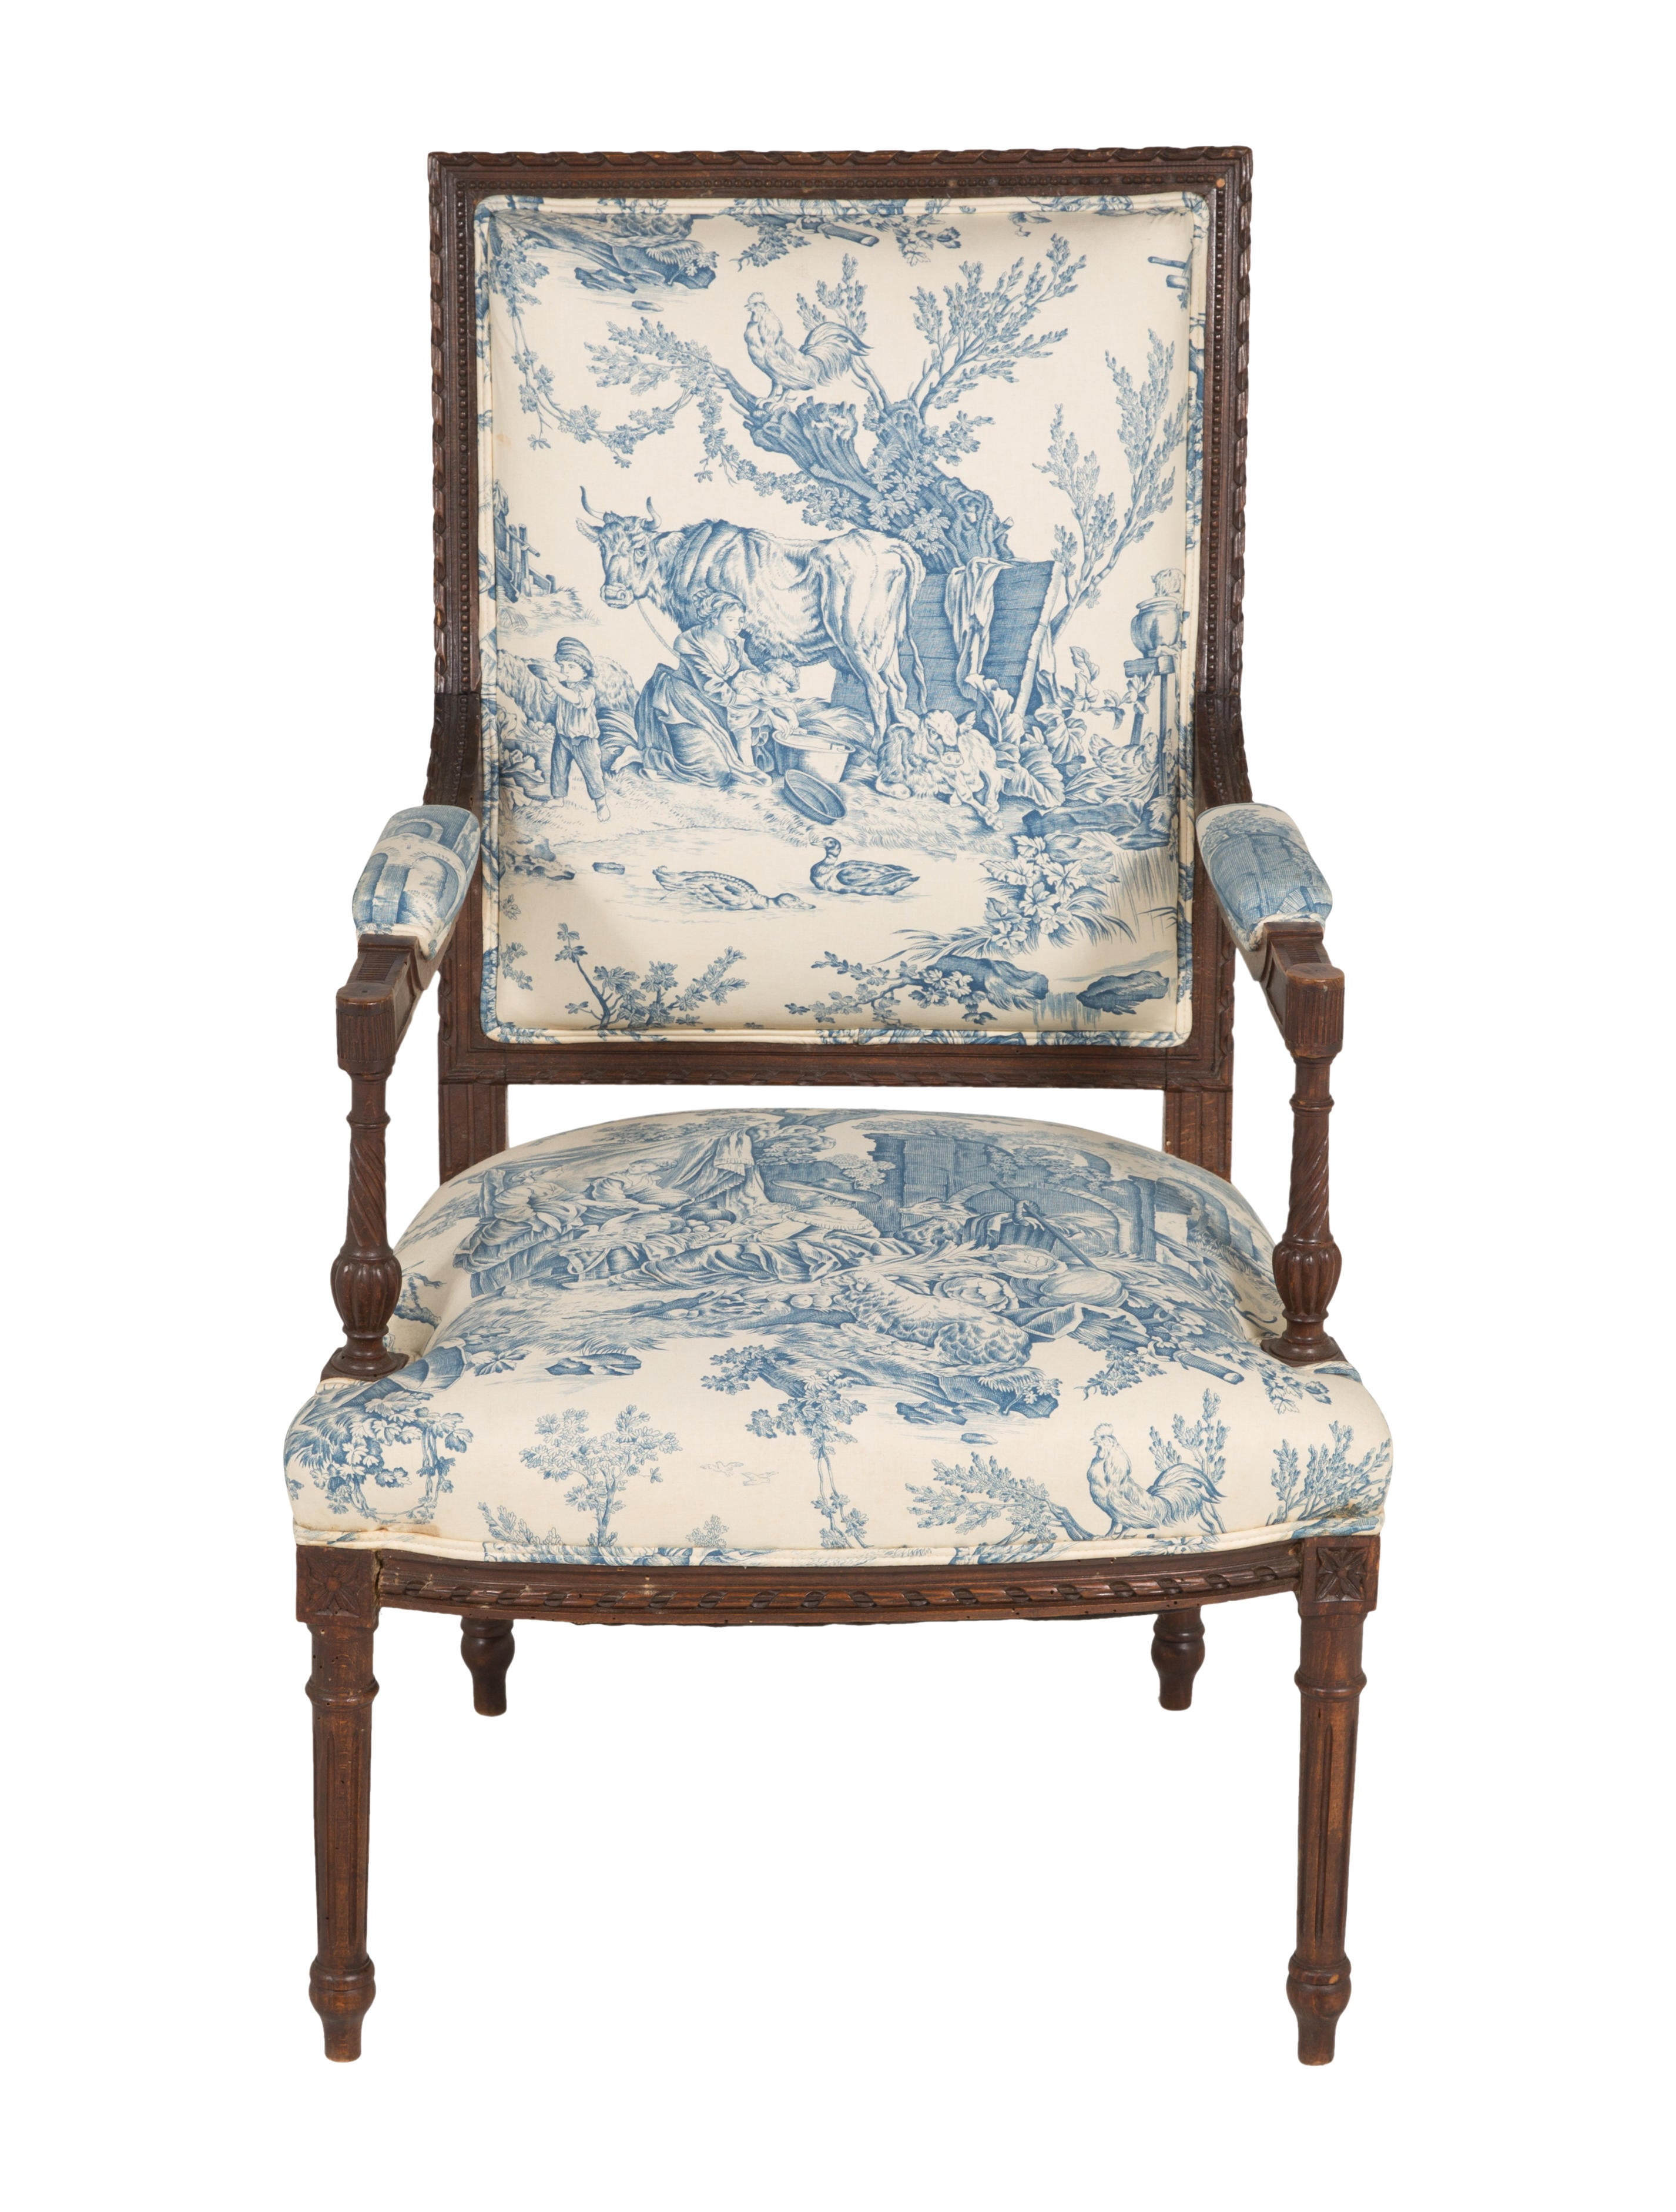 Louis XVI-Style Armchair - Furniture - CHAIR20292 | The ...